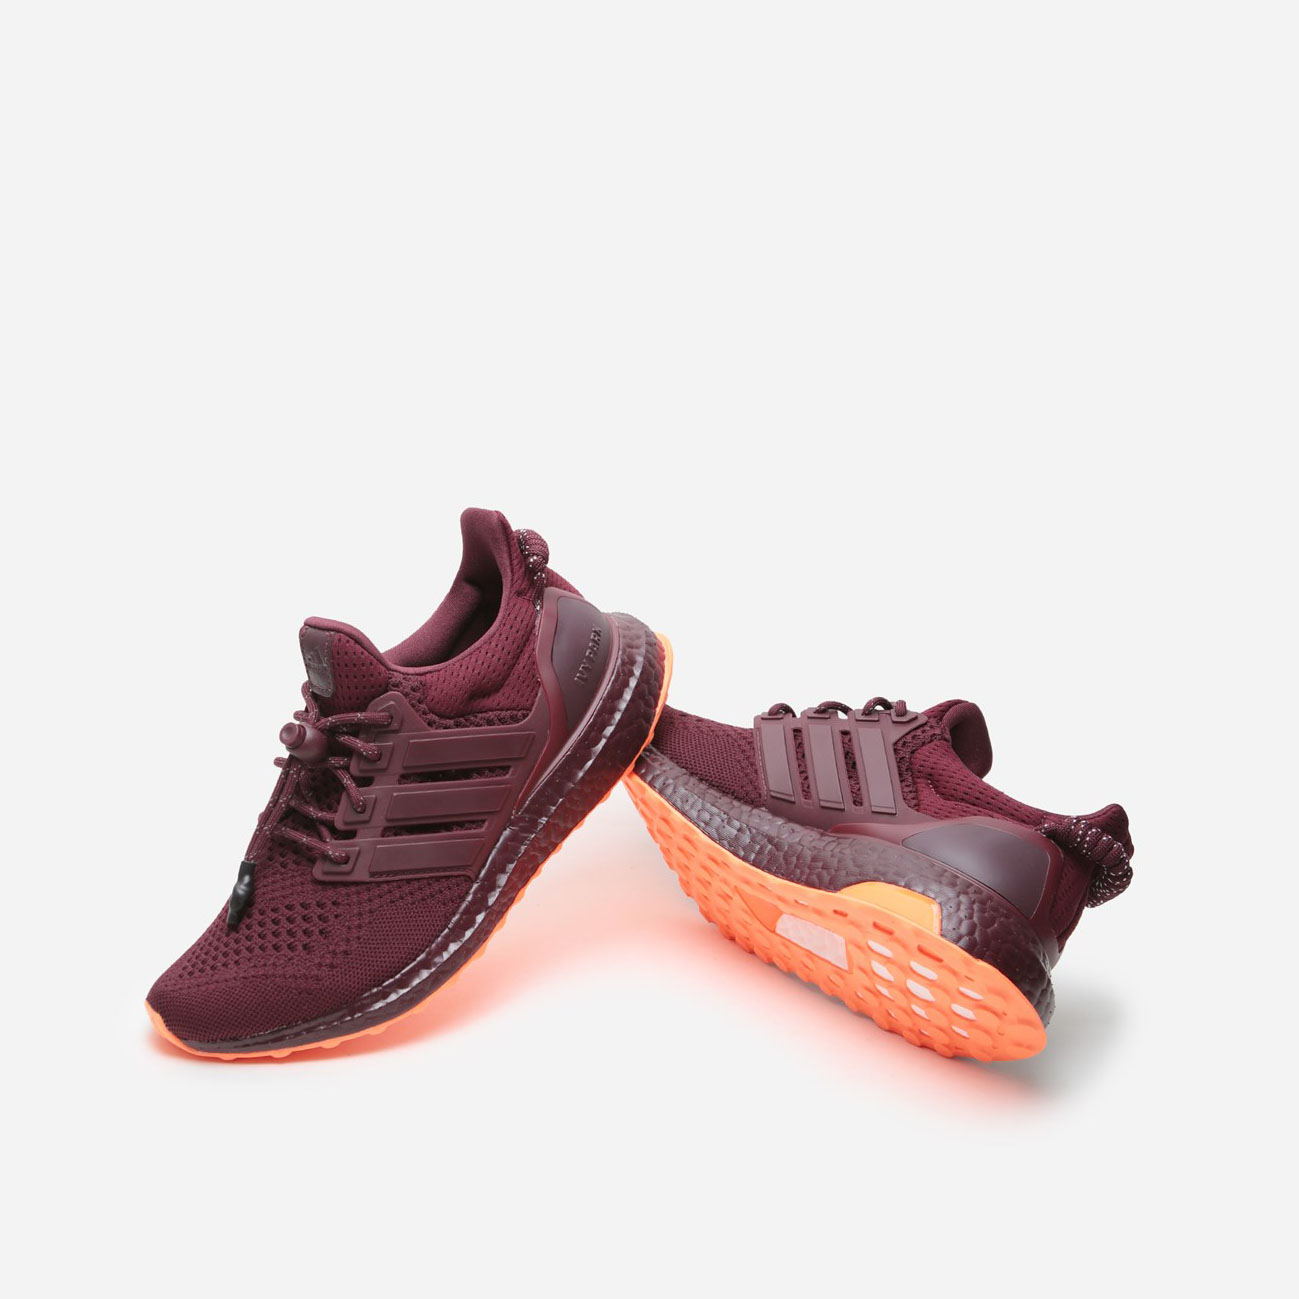 ADIDAS X BEYONCE IVY PARK ULTRA BOOST MAROON ORANGE SHOES FX3163 ...